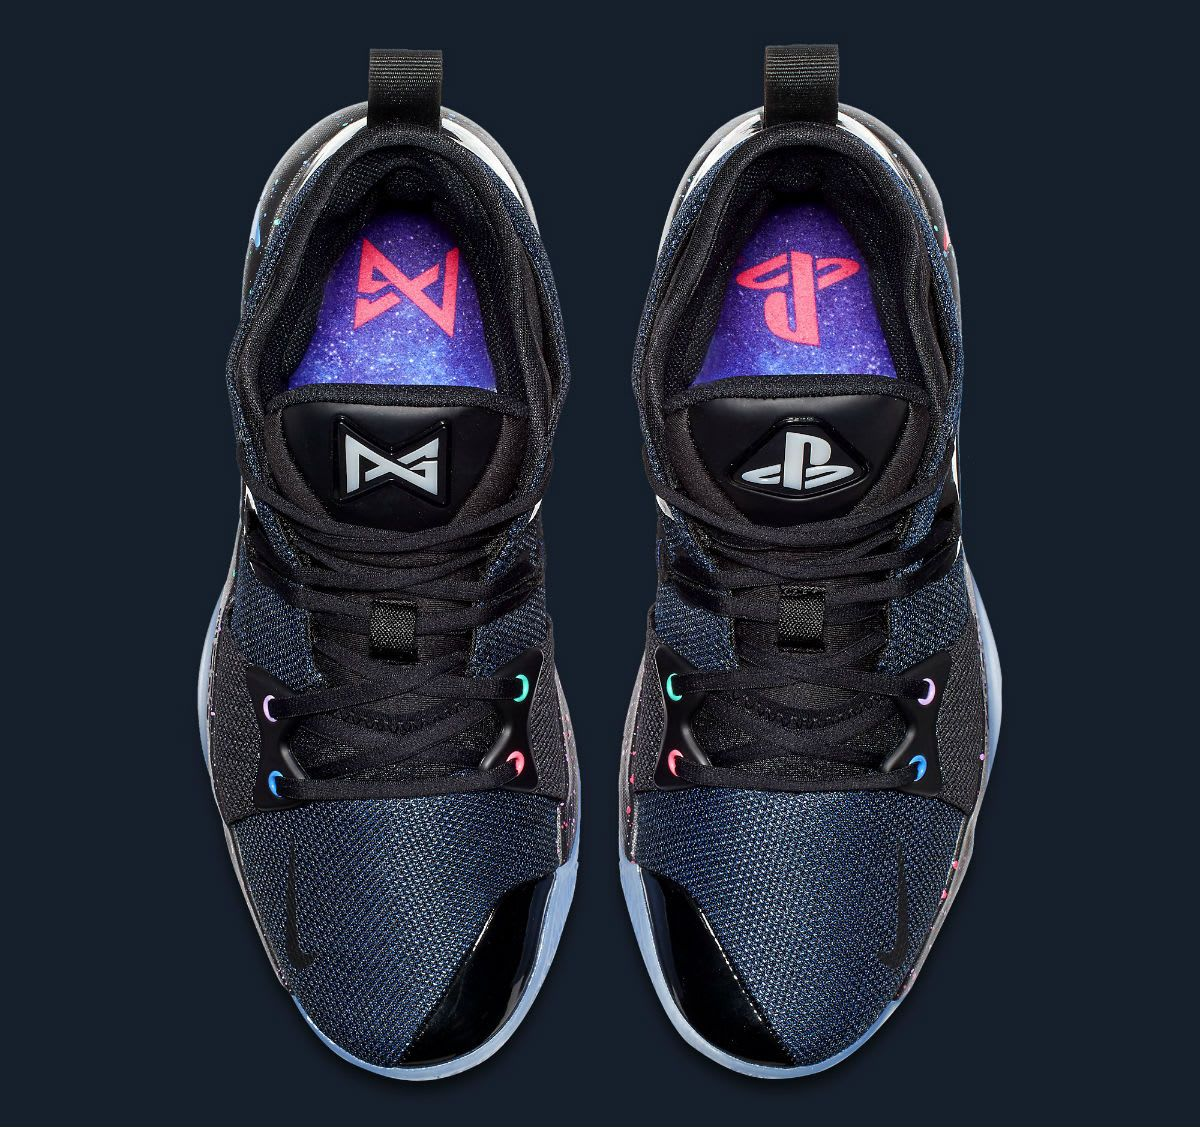 Nike PG2 PlayStation Shoes | Basketball shoes, Best sneakers